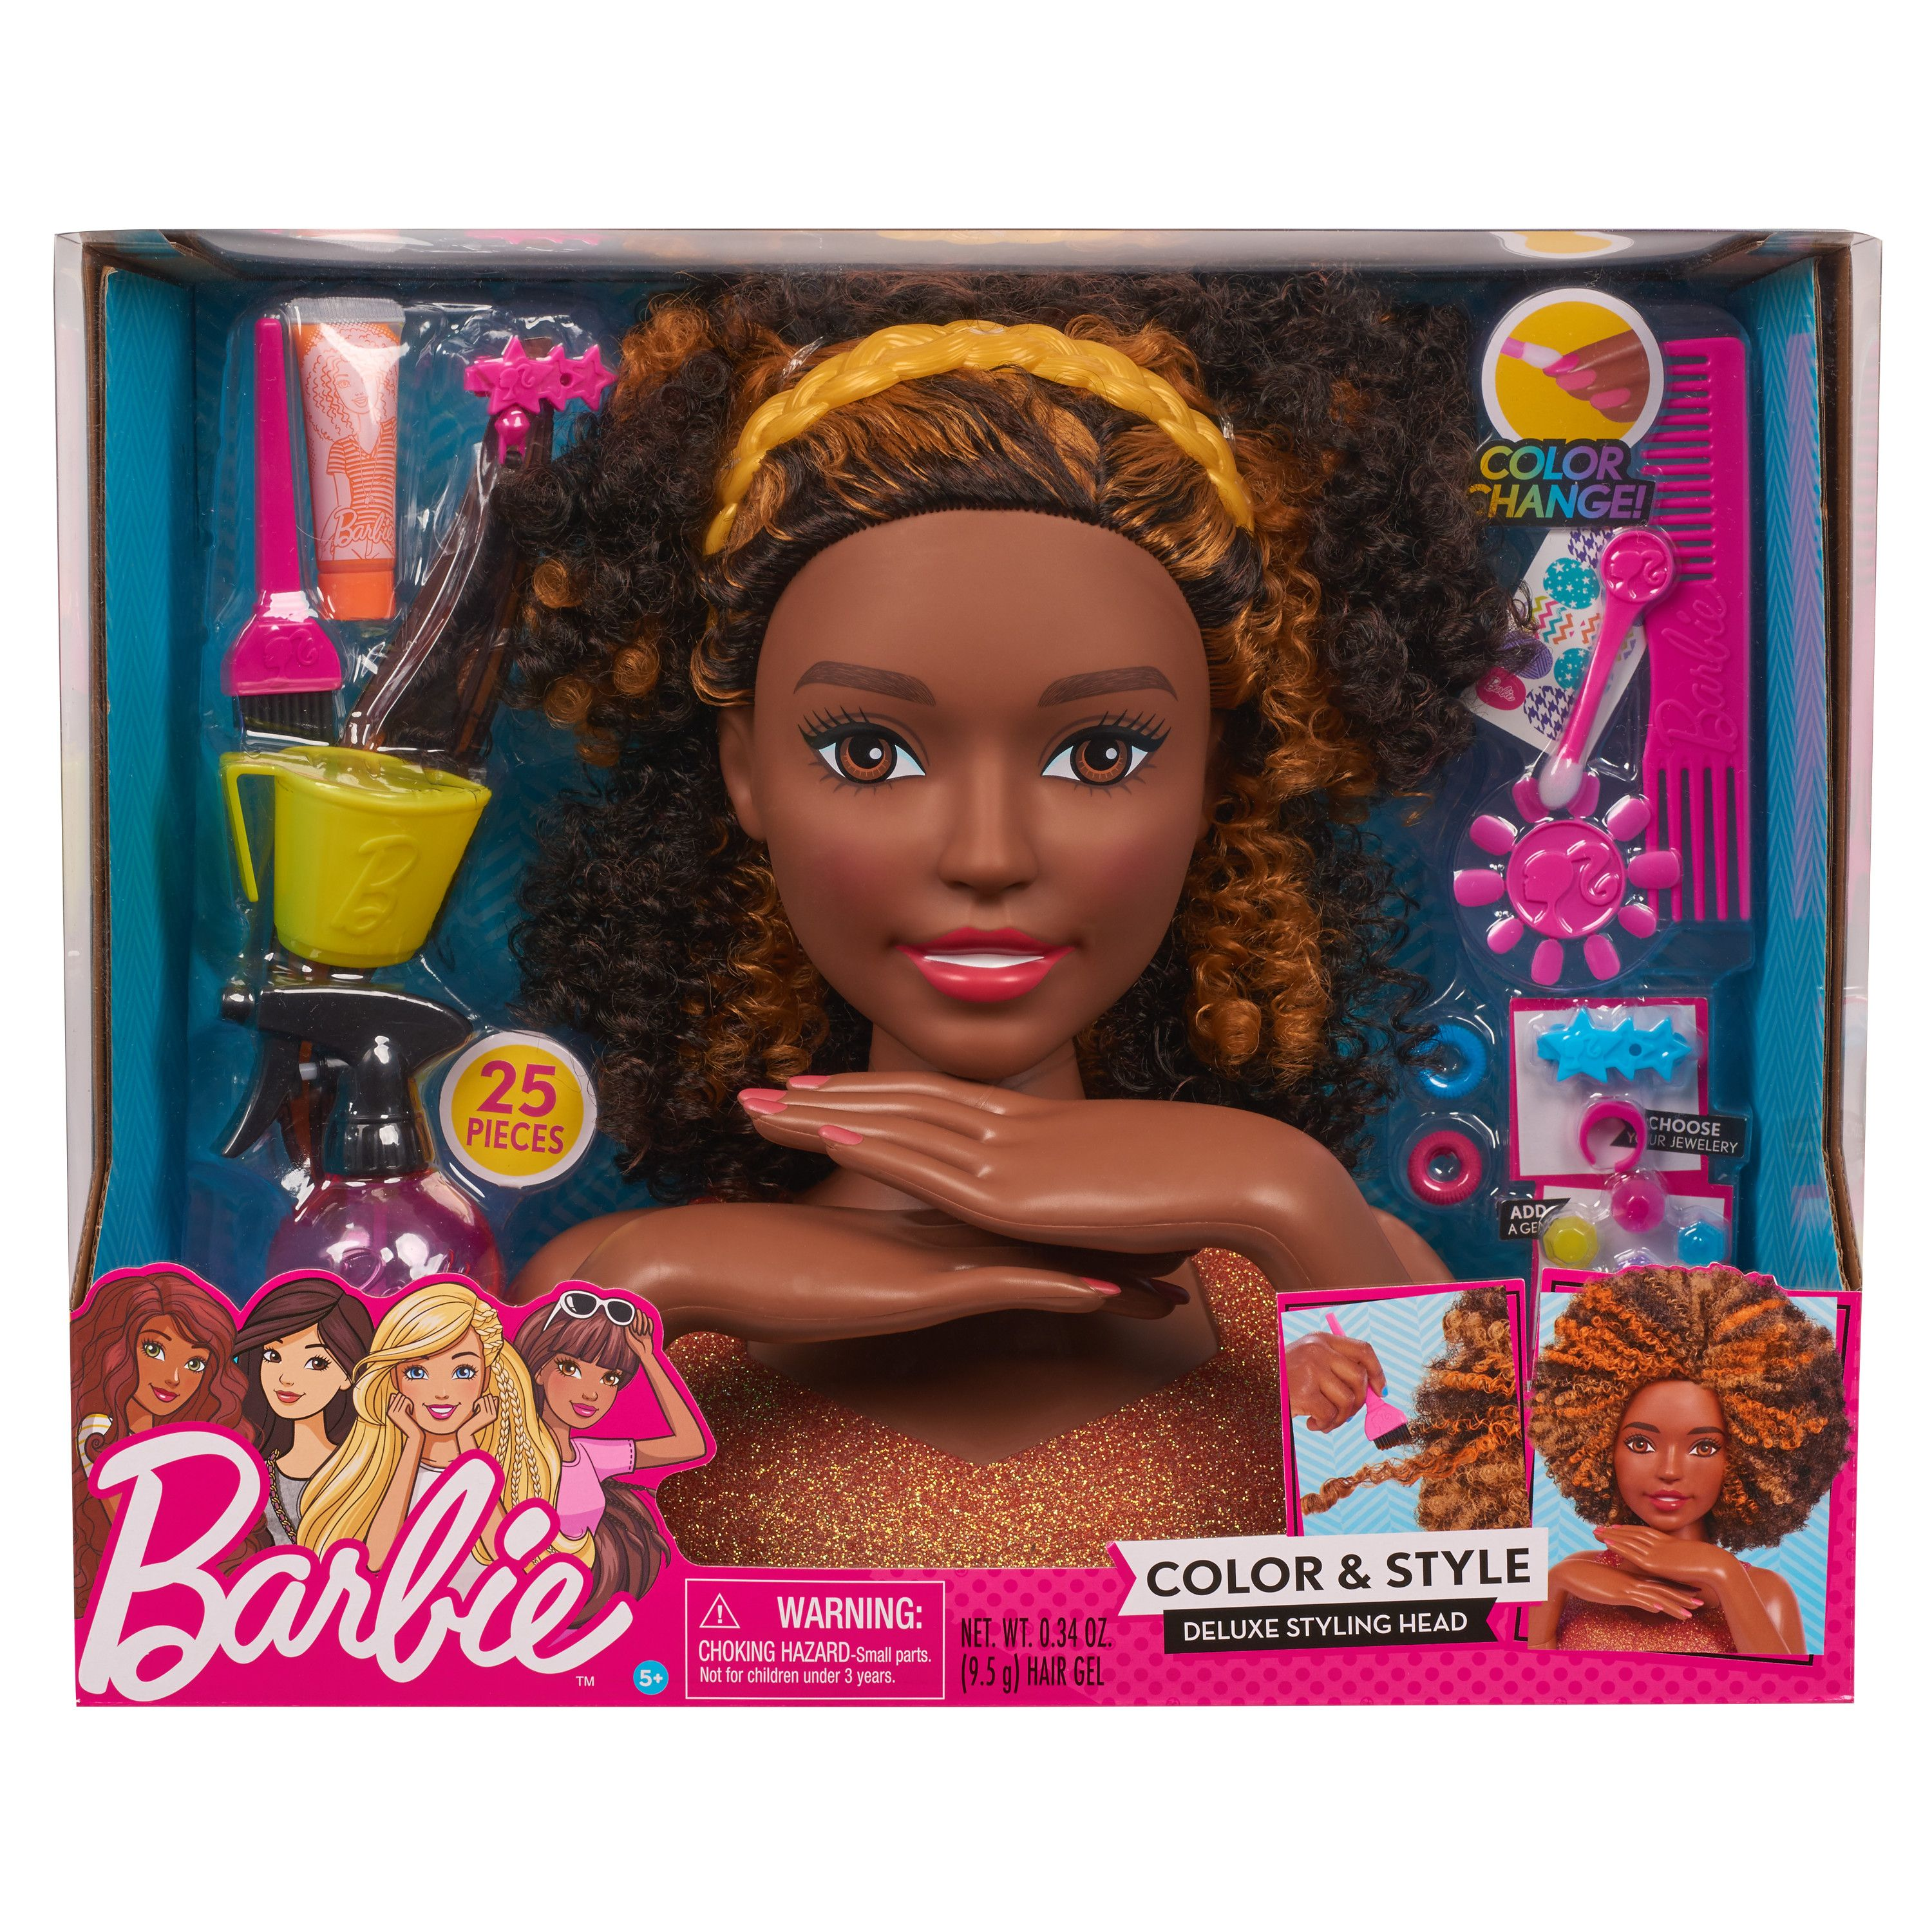 Barbie Color Style Deluxe Styling Head Curly Hair Walmart Com In 2020 Curly Hair Styles Barbie Styling Head Black Curly Hair